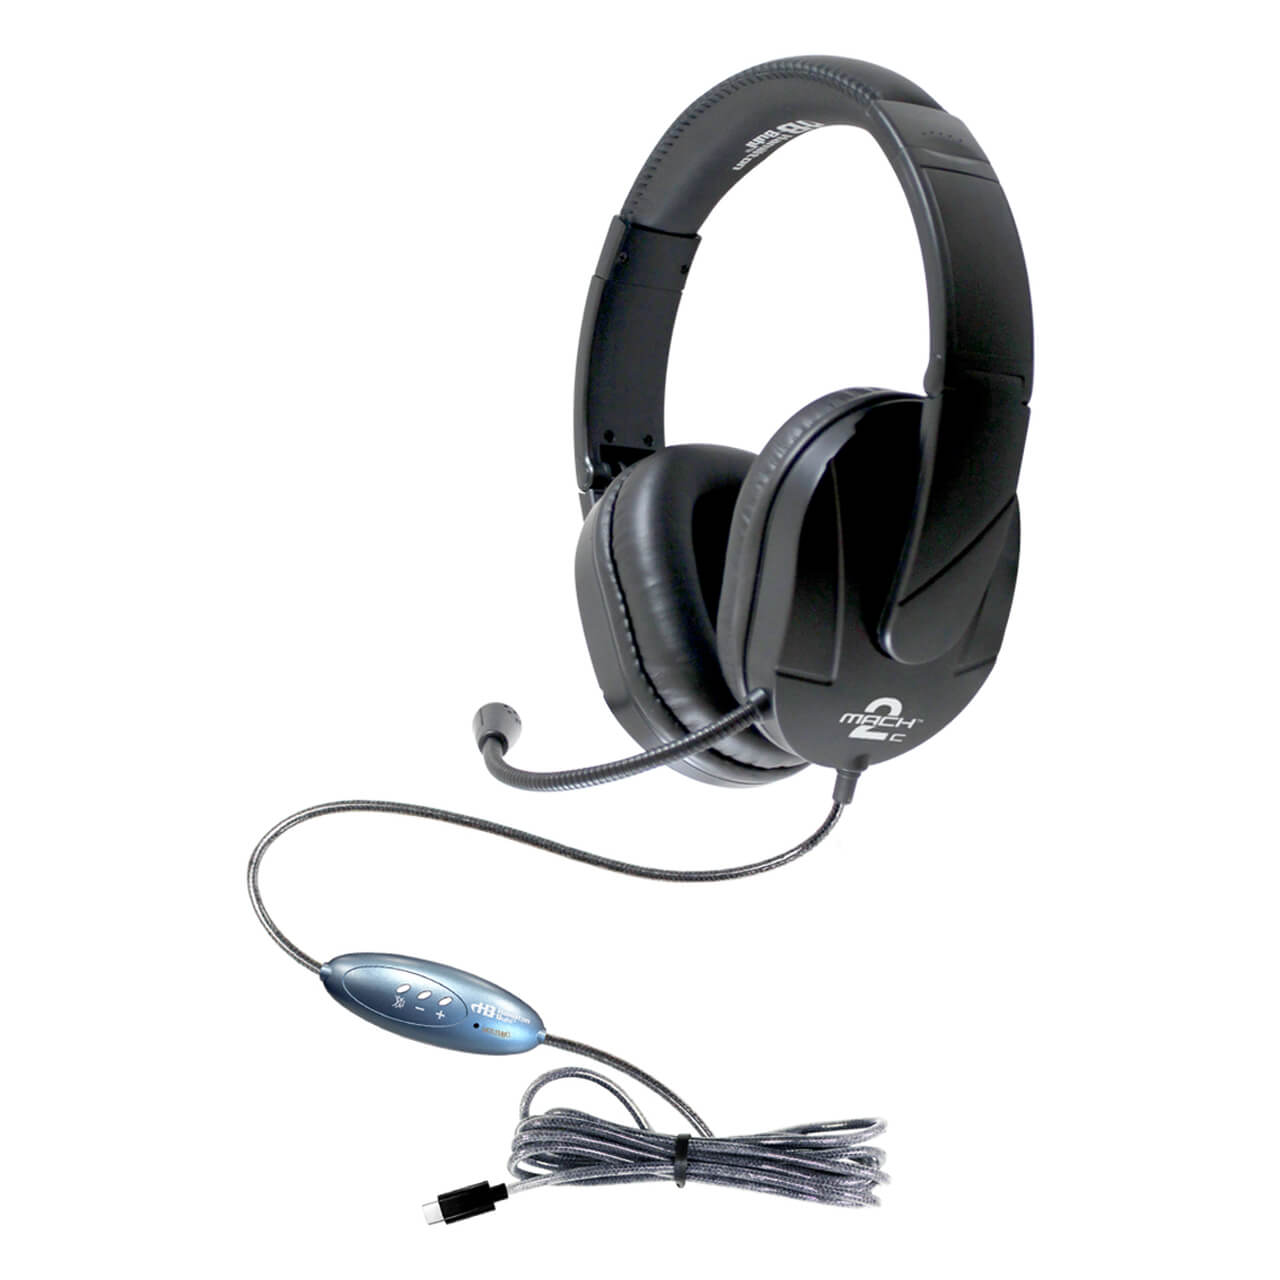 MACH-2™ USB Type -C Multimedia Stereo Headset - Over-Ear with Steel Reinforced Gooseneck Mic - Learning Headphones